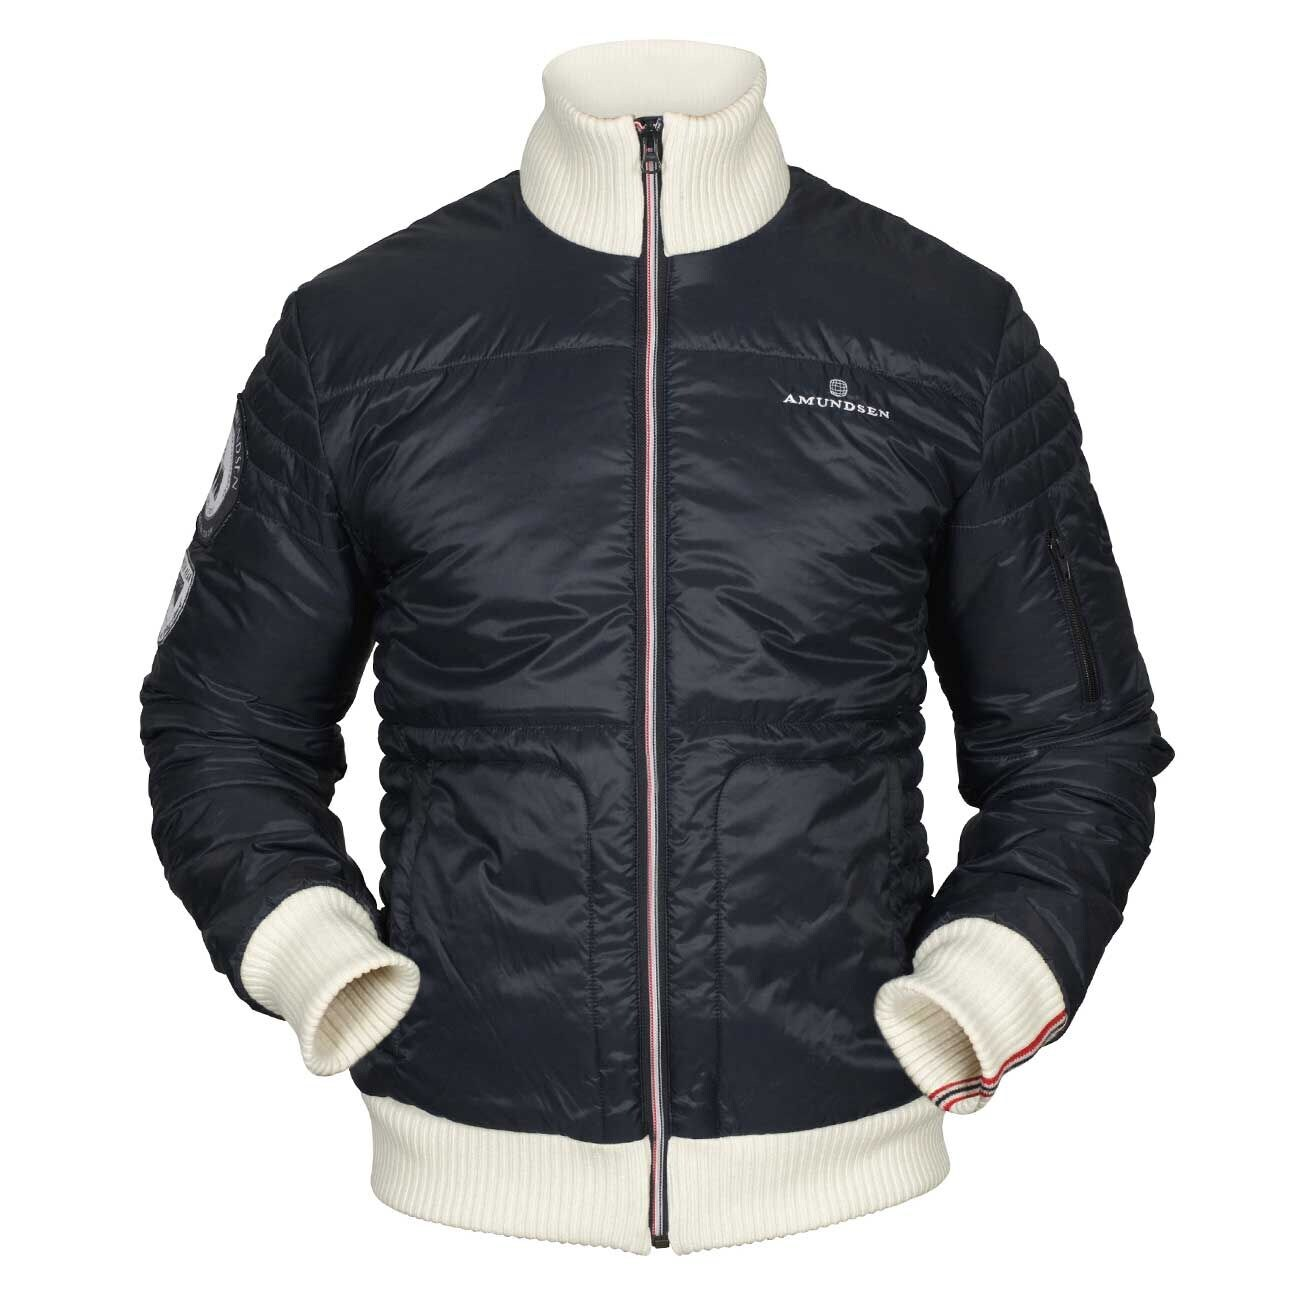 Amundsen Sports Breguet Jacket M's